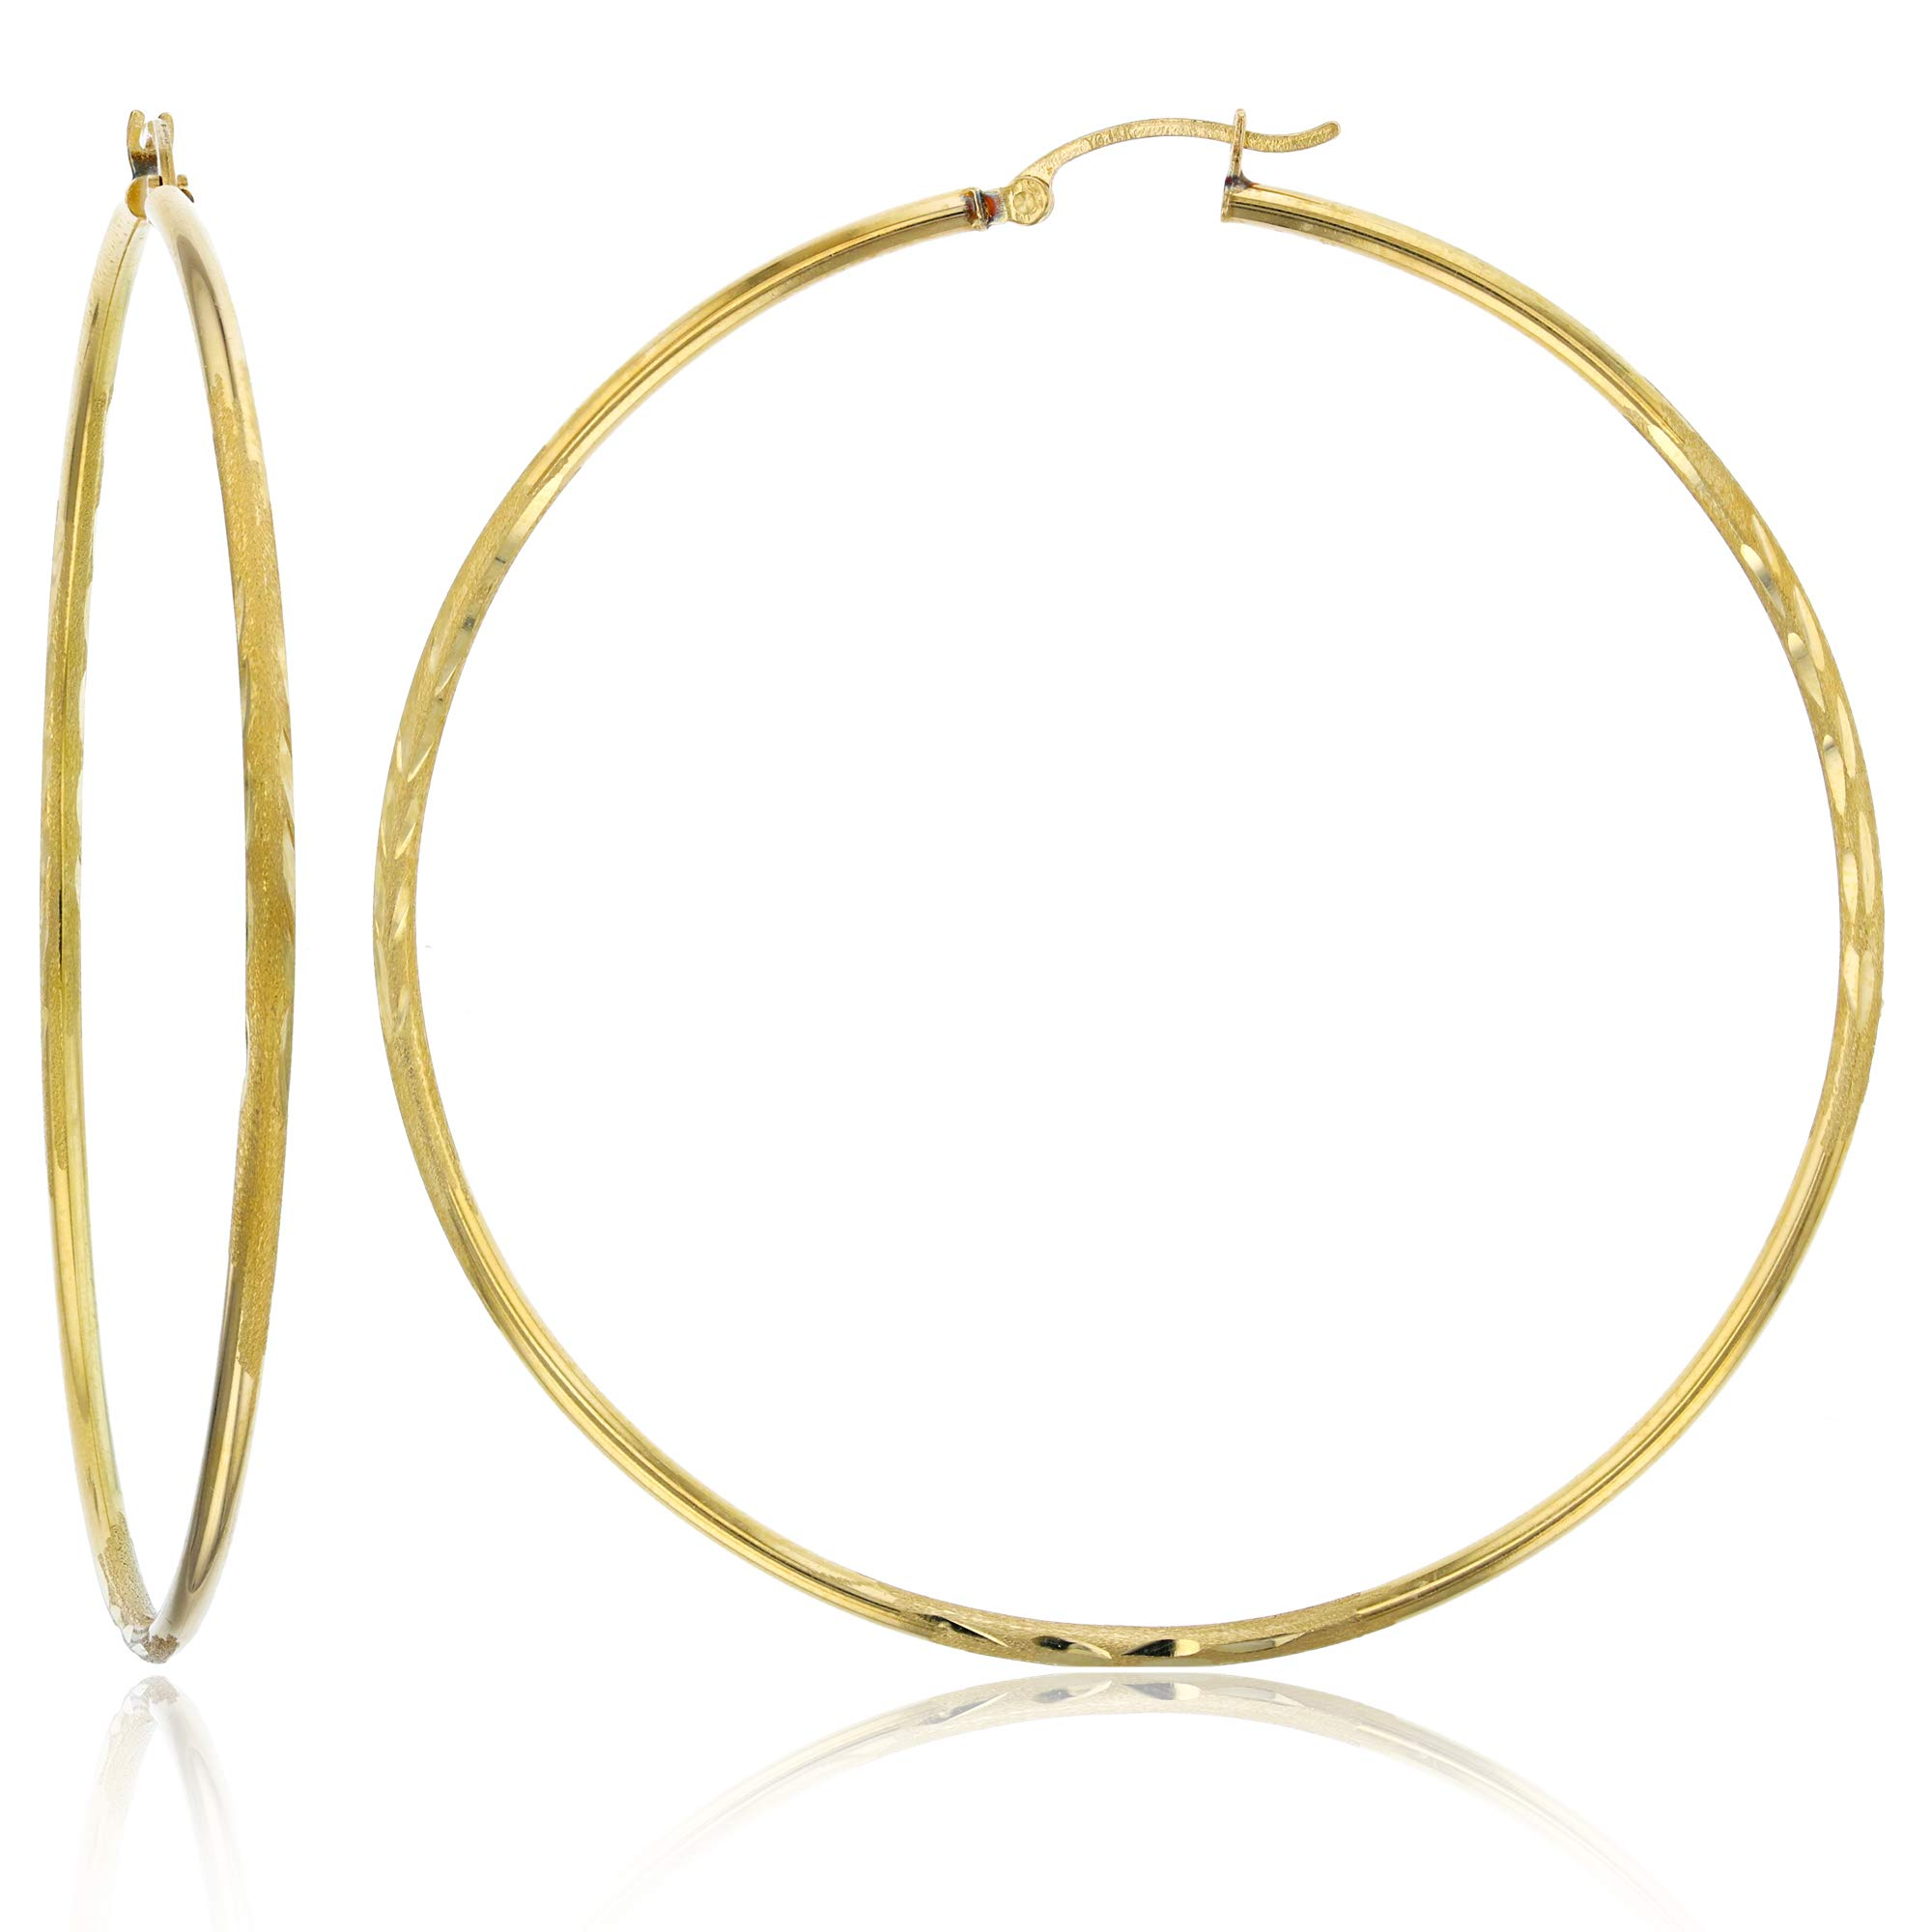 14k Yellow Gold Solid Polished Round Diamond Cut Hoop Earrings for Women | 2mm Thick | Classic Style | Round Diamond Cut Hoop Earrings | Secure Click-Top | Shiny Polished Earrings for Women, 2x70mm by Decadence